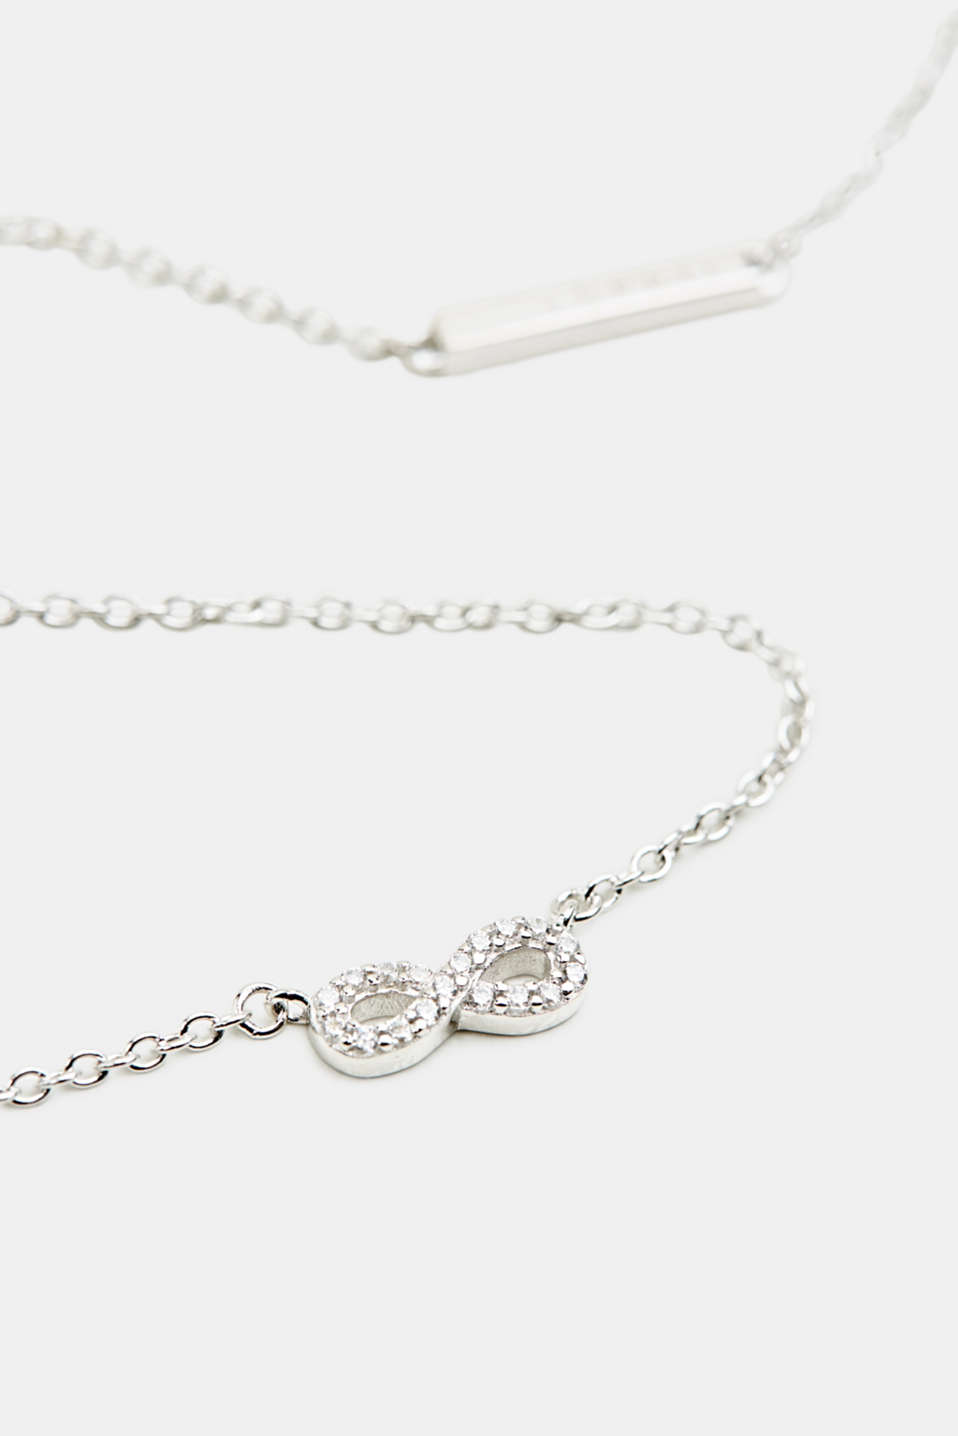 Necklace with zirconia pendant, sterling silver, LCSILVER, detail image number 1